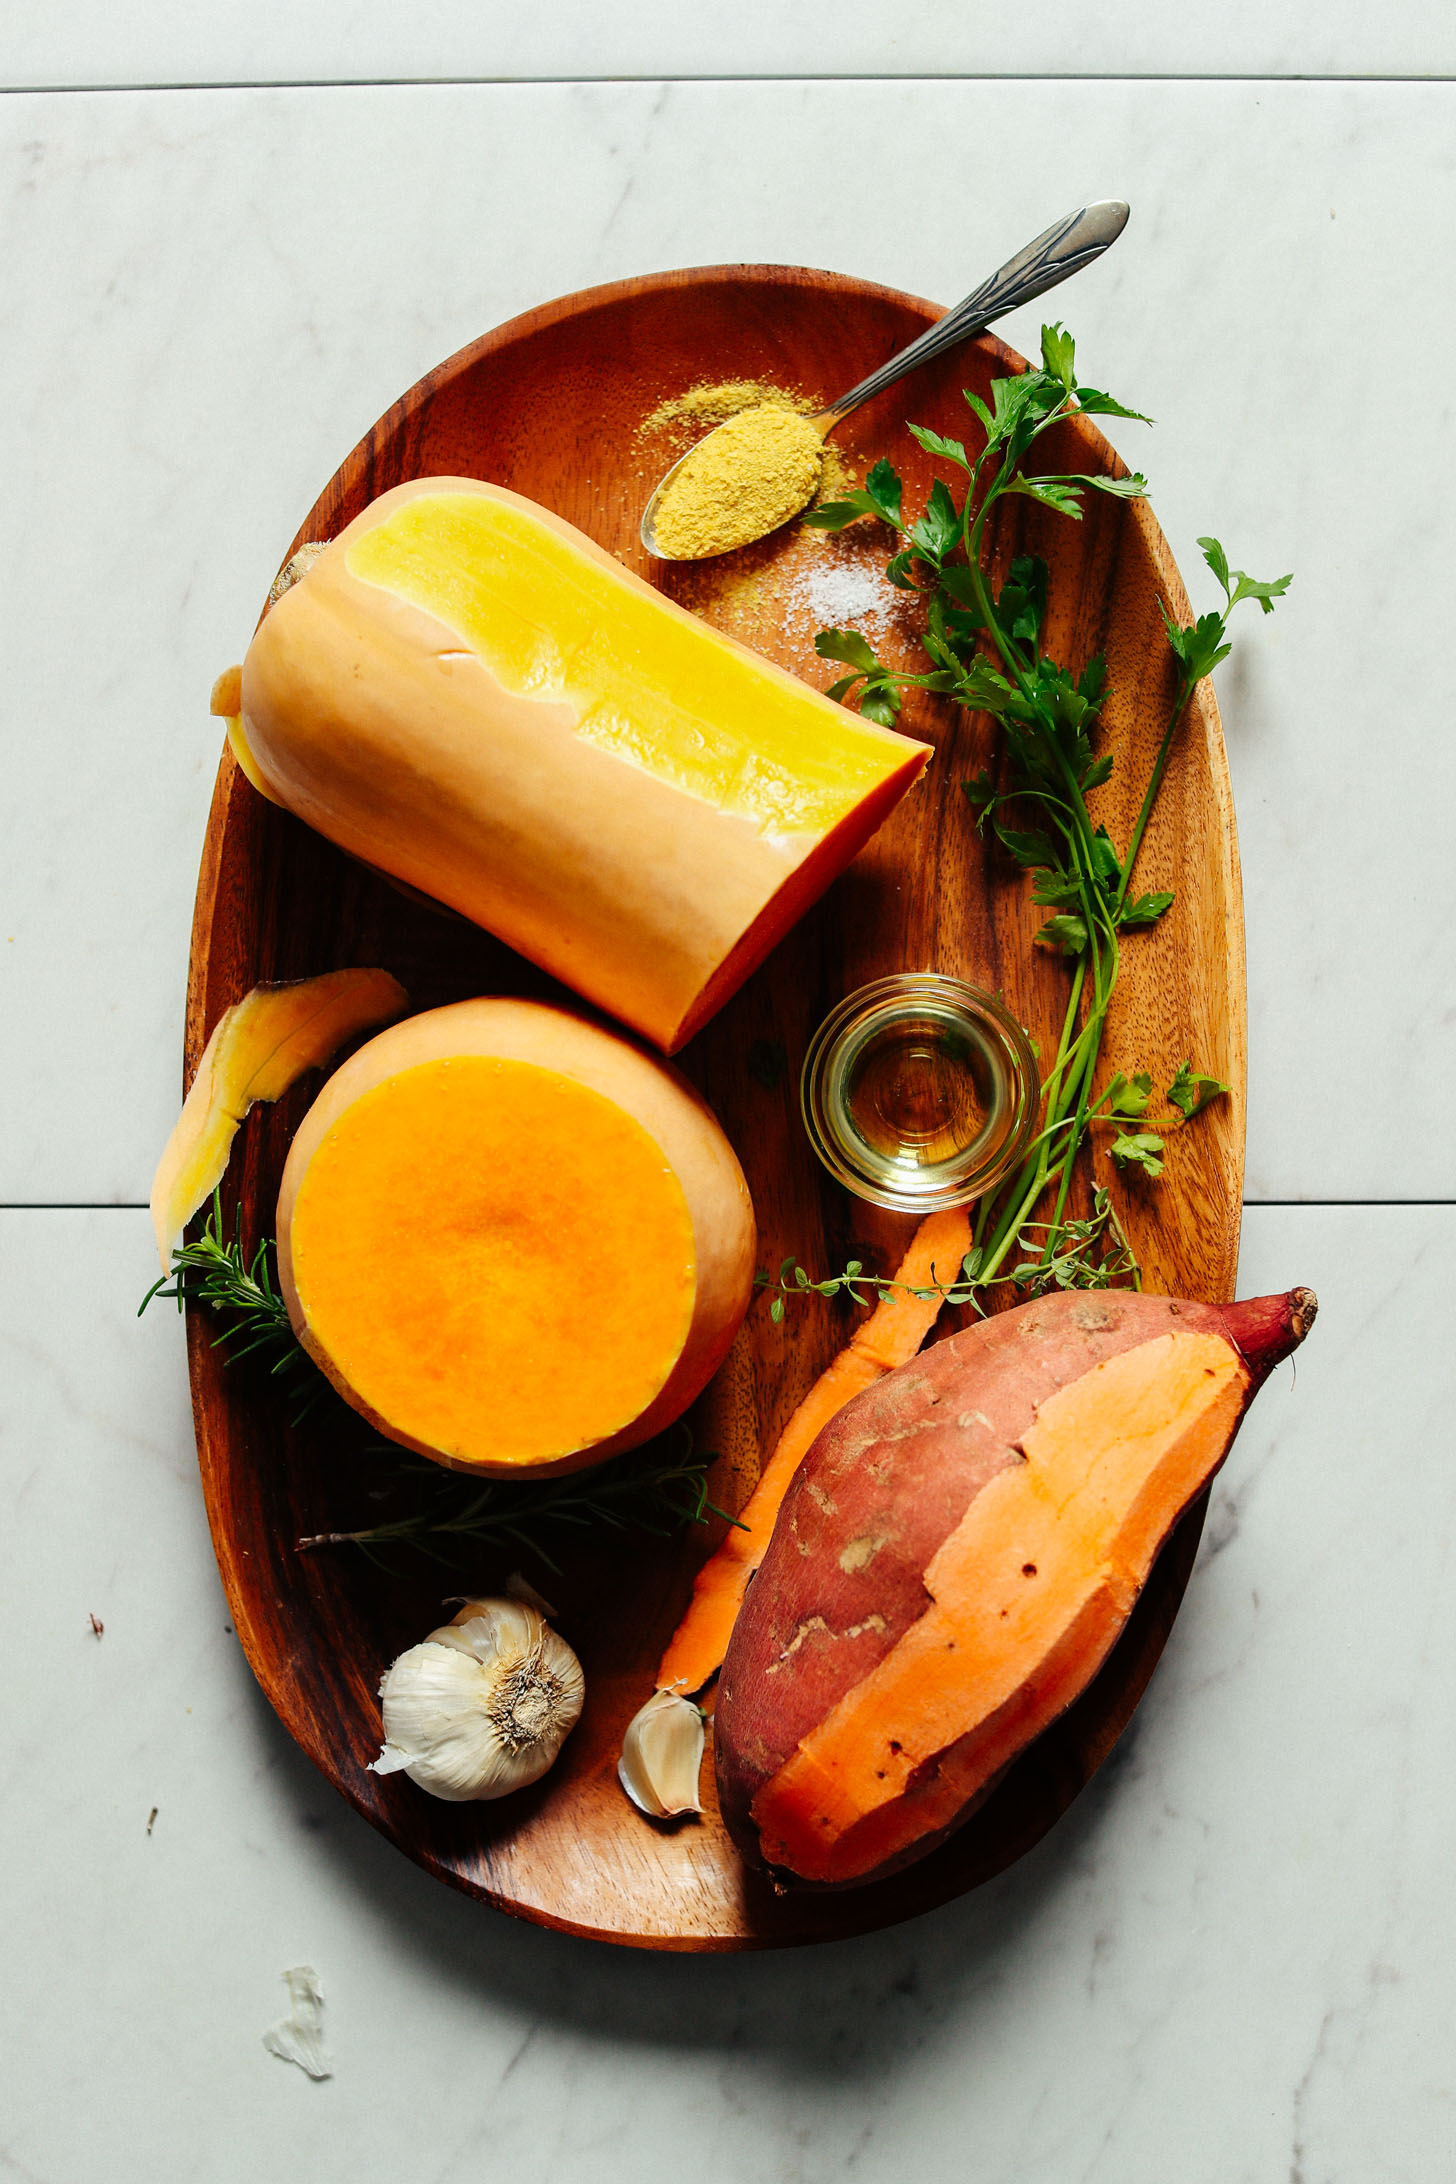 Butternut squash, sweet potato, garlic, olive oil, parsley and nutritional yeast displayed on a wooden platter